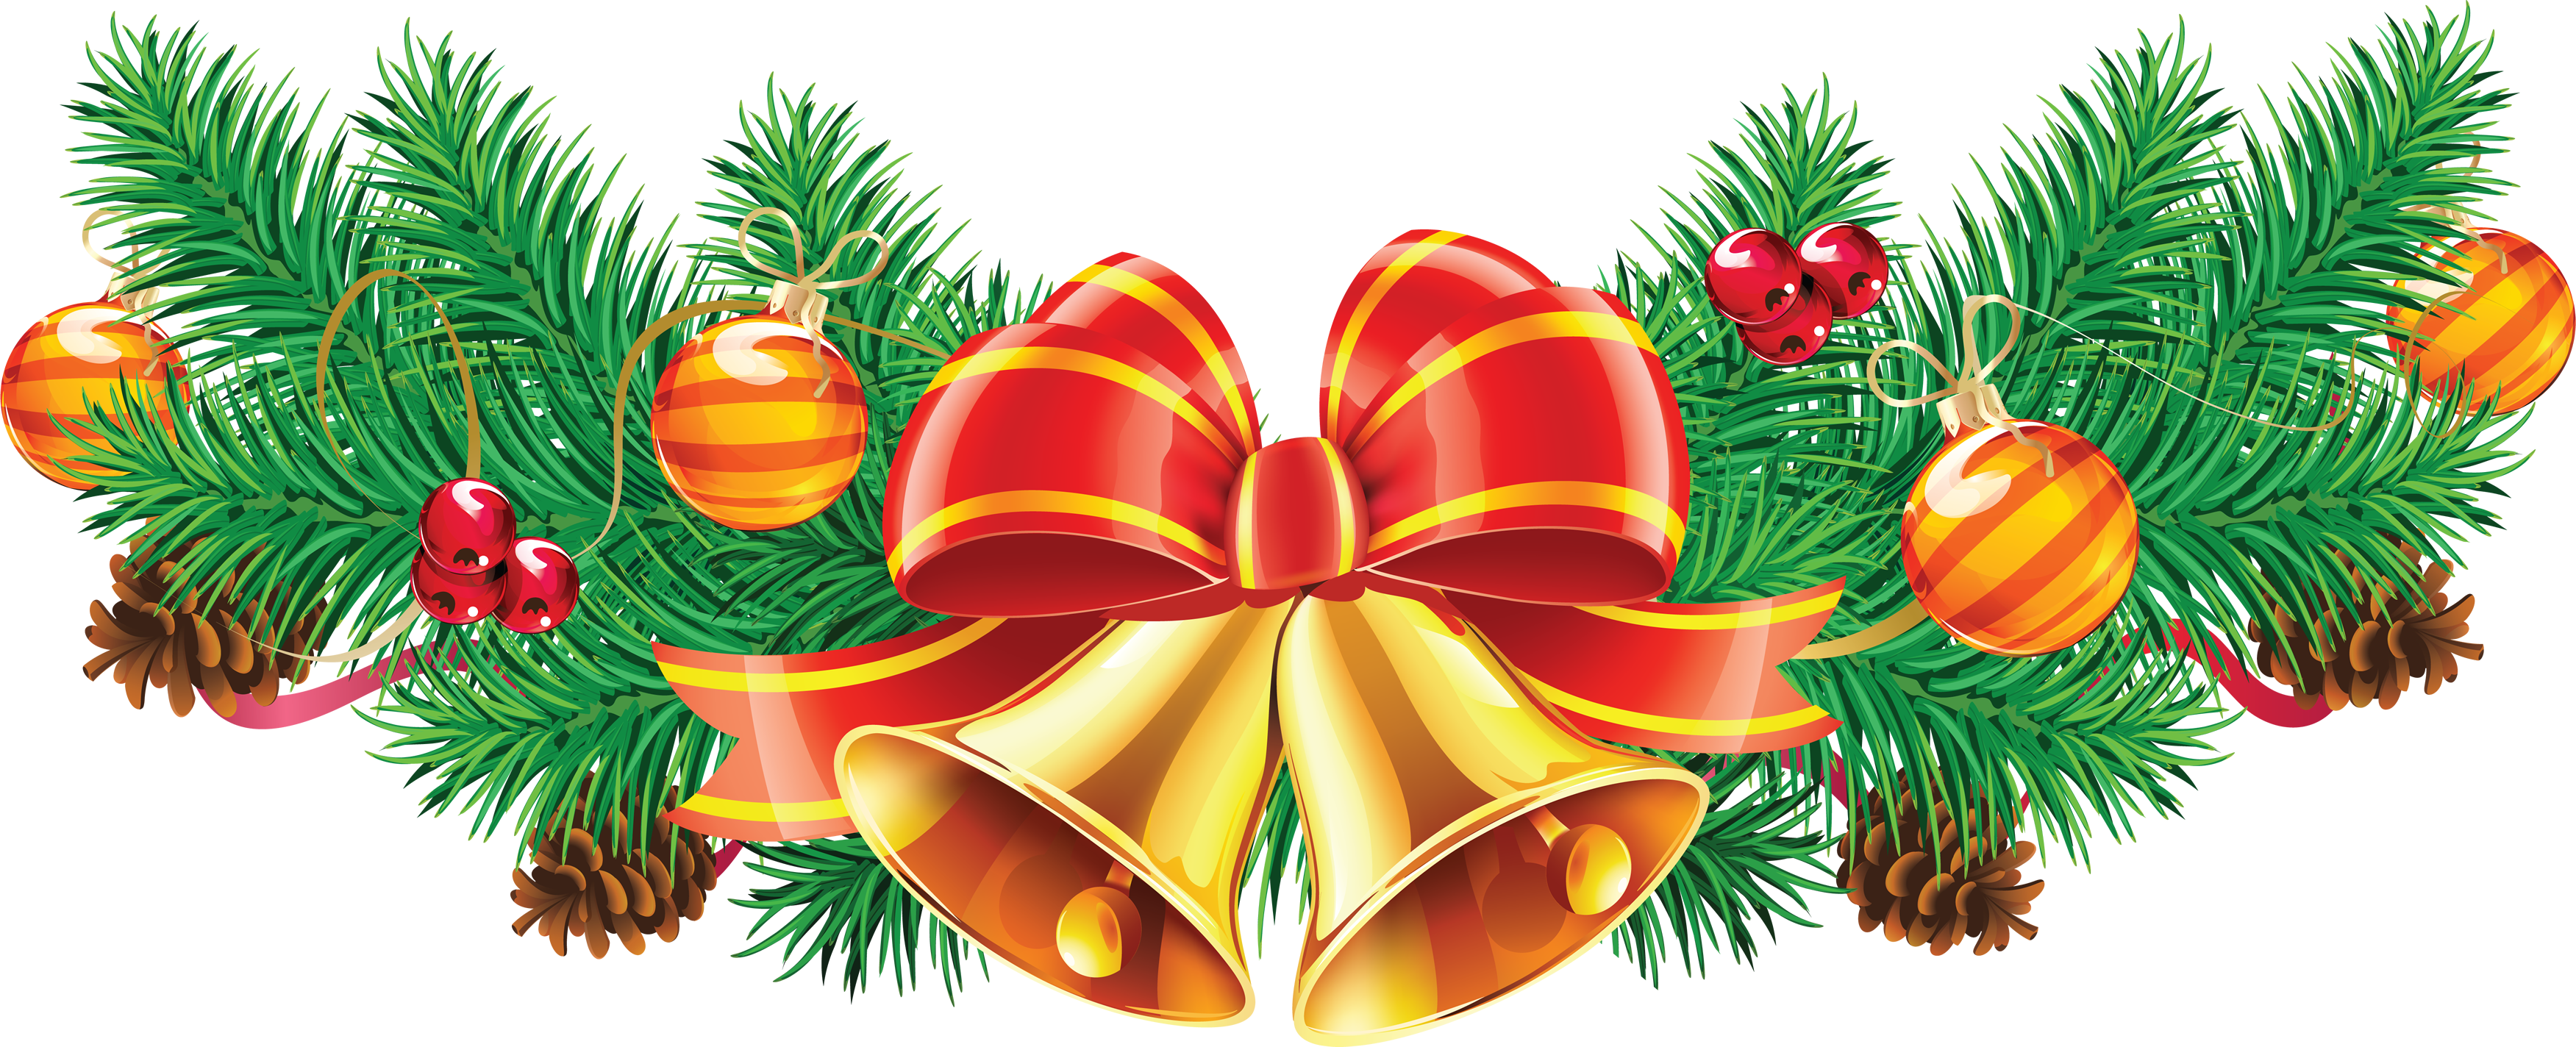 Christmas Illustrations Png.Christmas Png Image 99910 Png Images Pngio